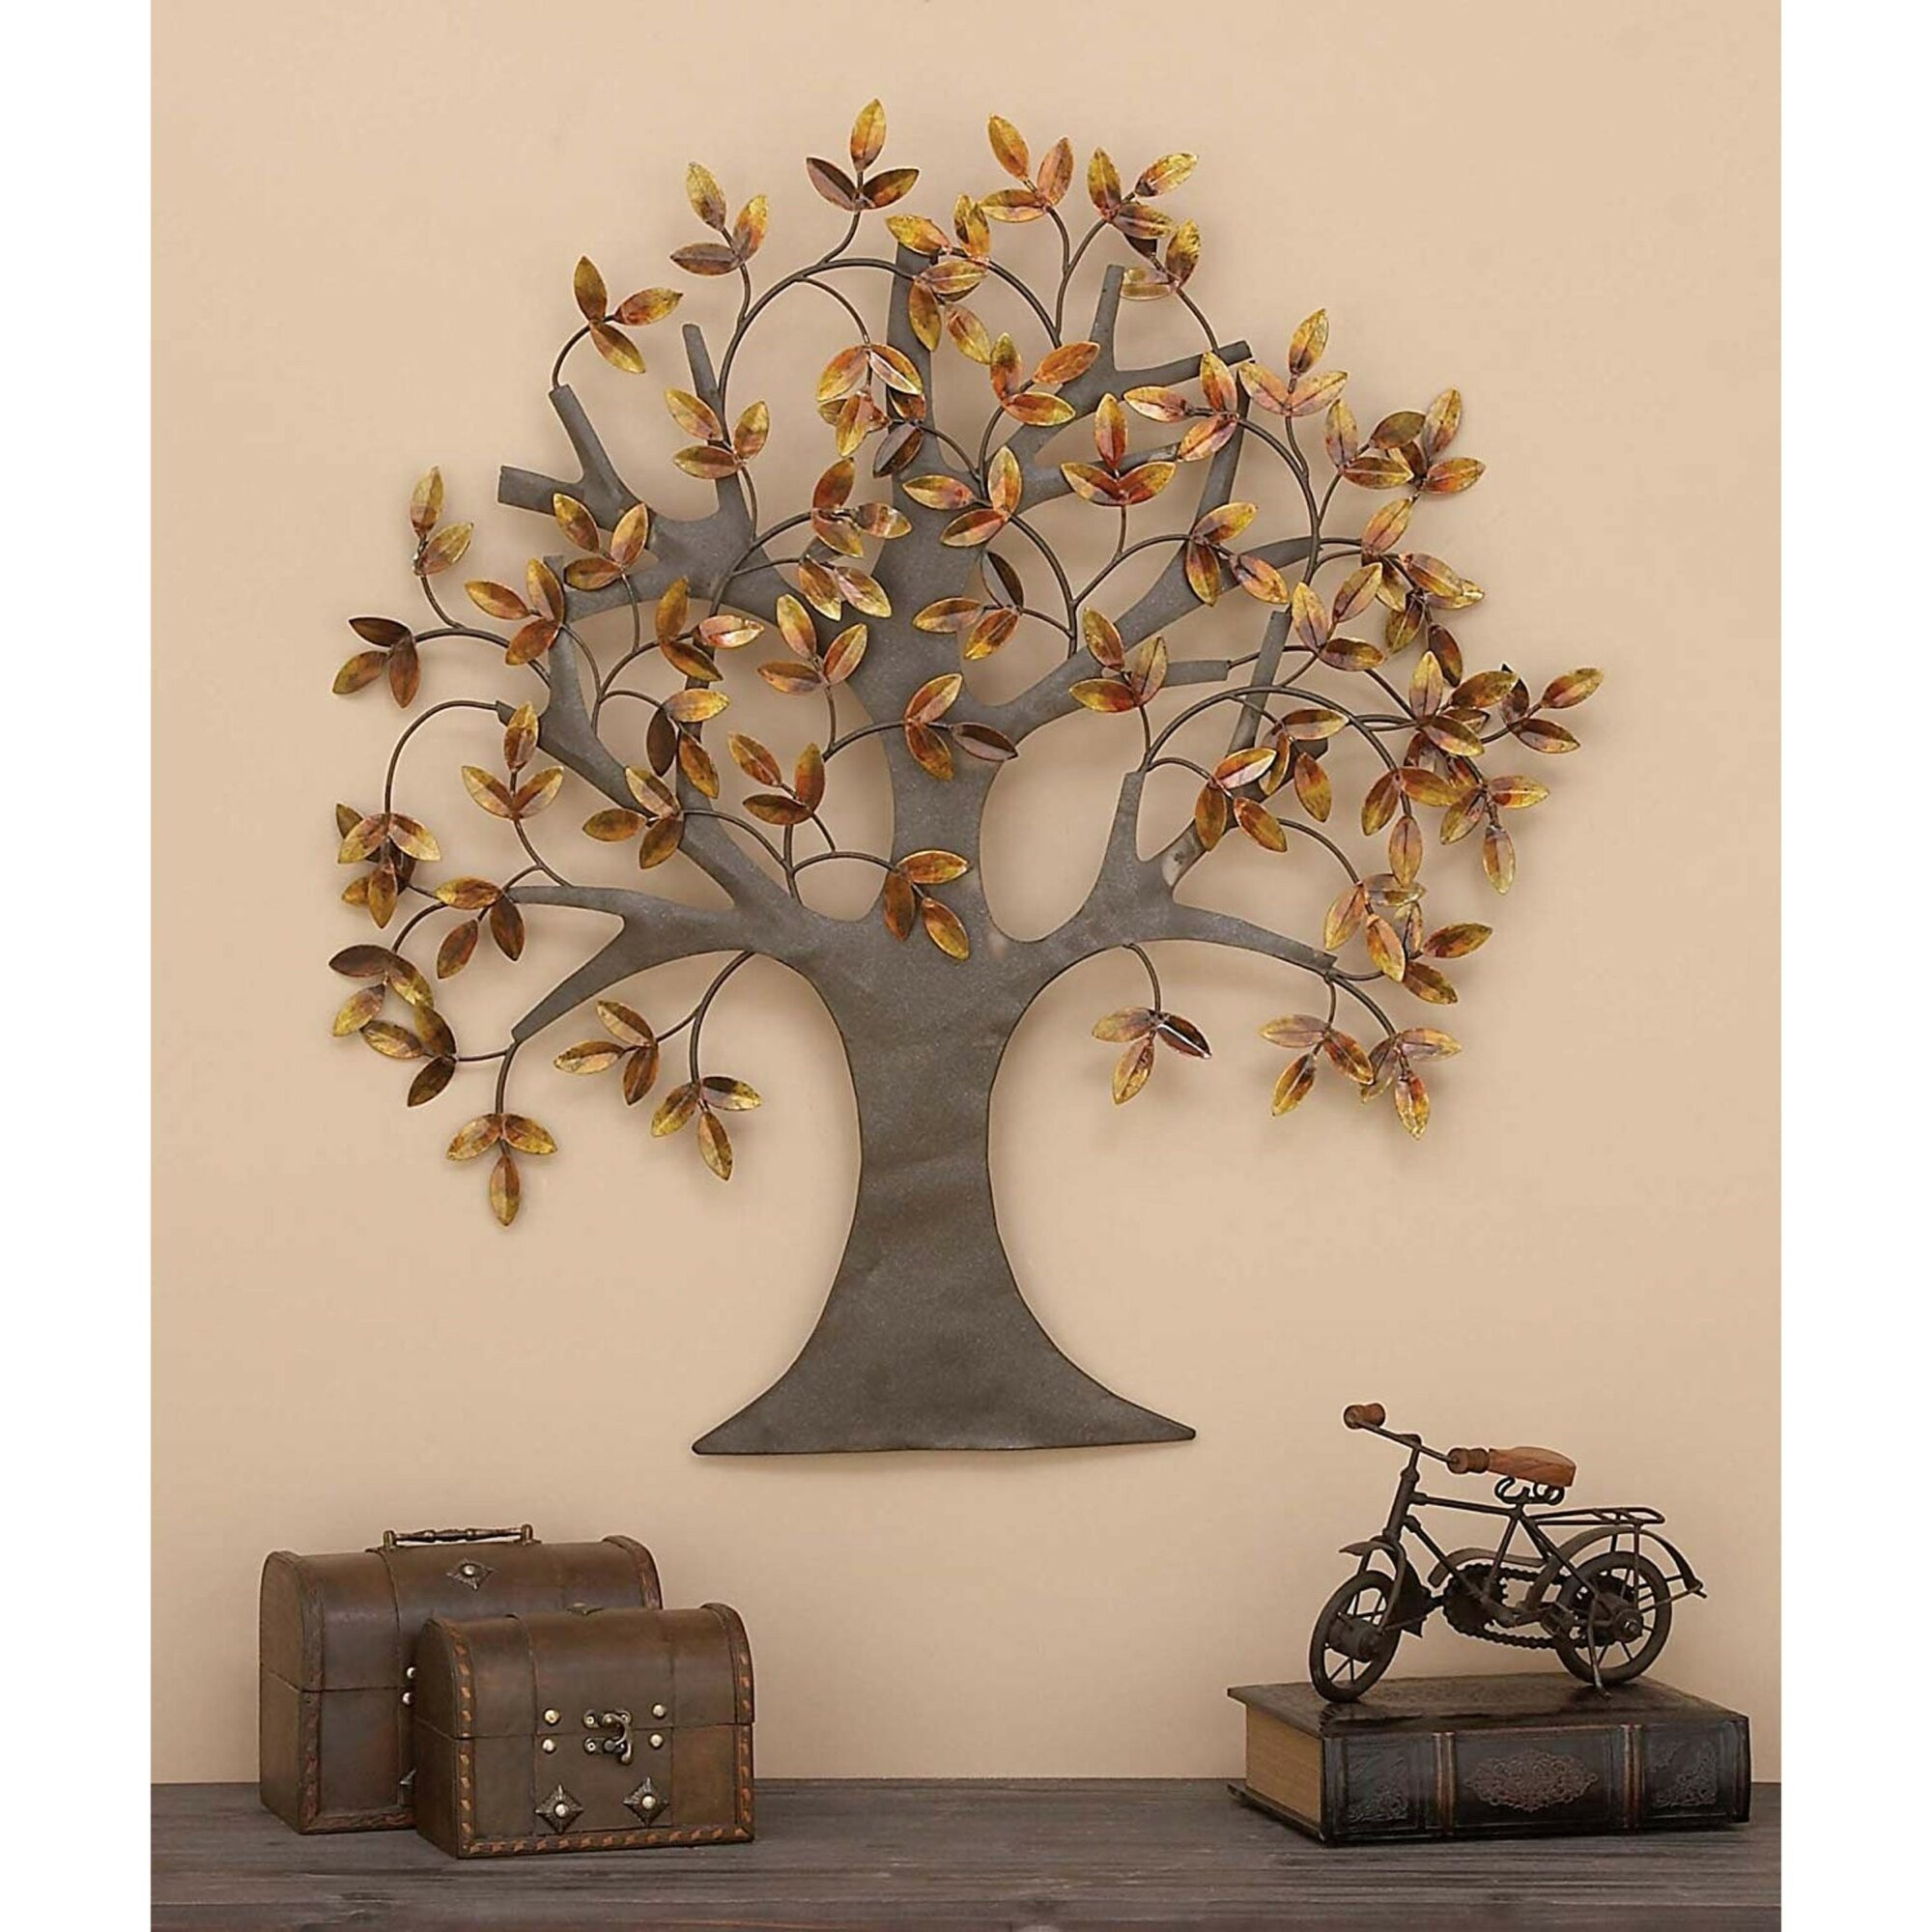 2020 Wall Decor By Cole & Grey Inside Cole & Grey Arbor Wall Décor  (View 1 of 20)